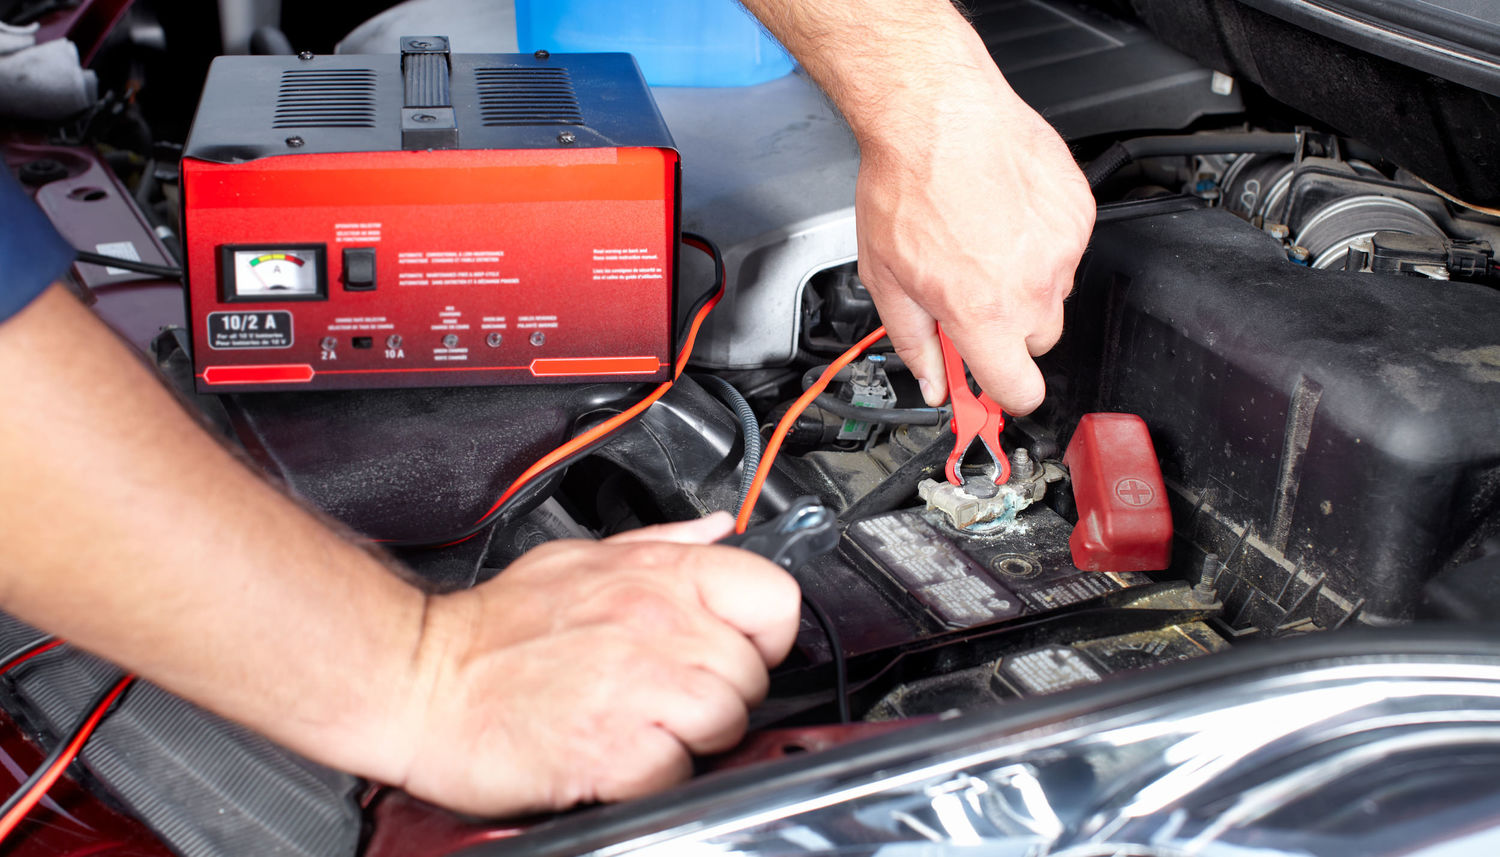 Car Electric Repairs in Dubai, UAE - Sunshine Auto - Car Repair Workshop